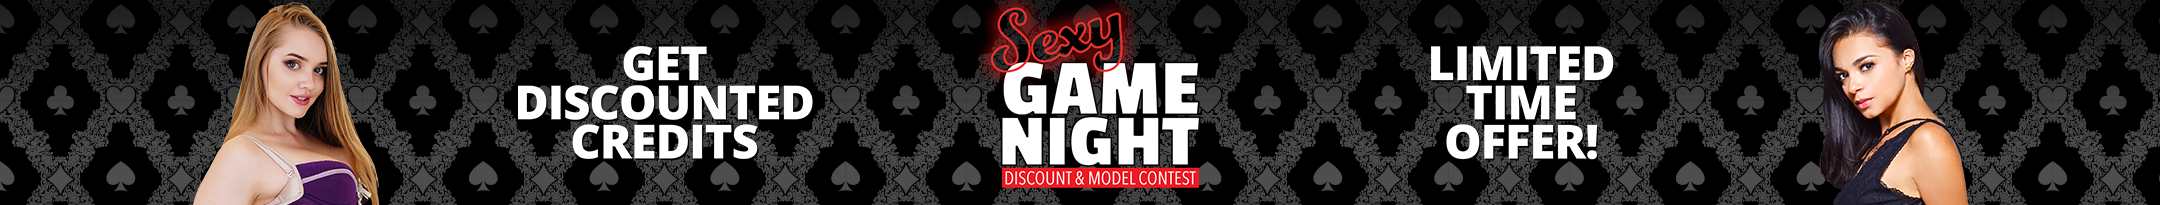 Sexy Game Night Discount Promo